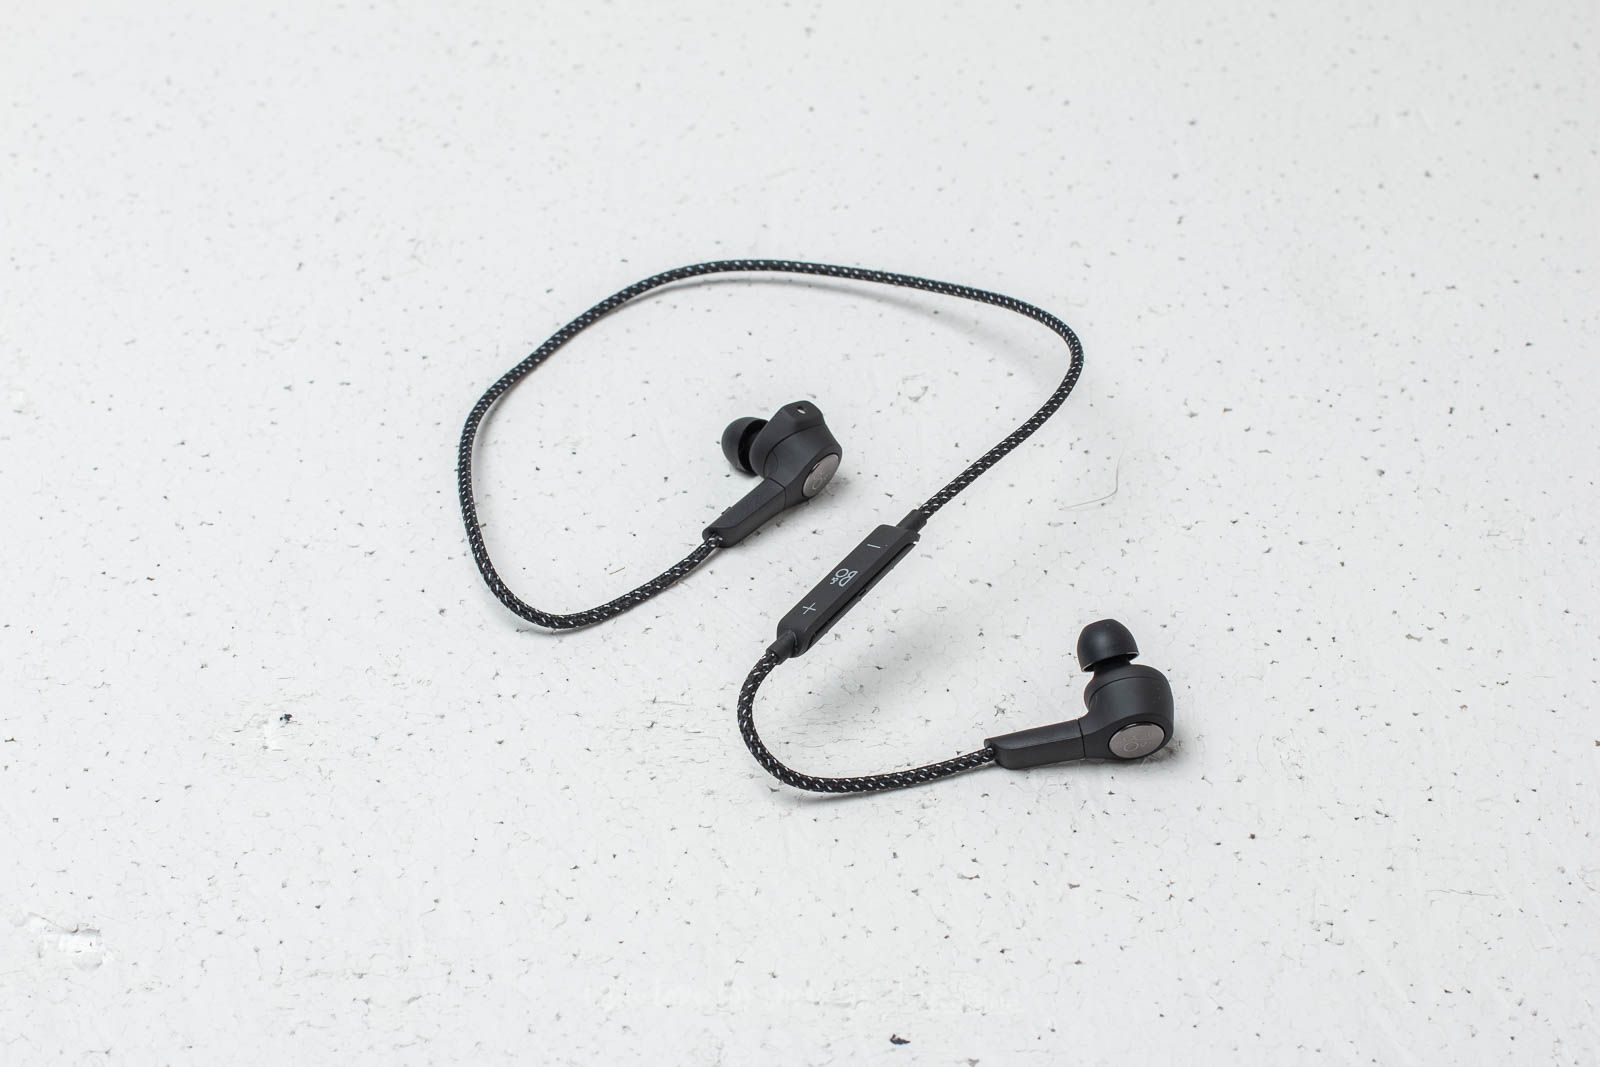 Bang & Olufsen Beoplay H5 Wireless Earphones